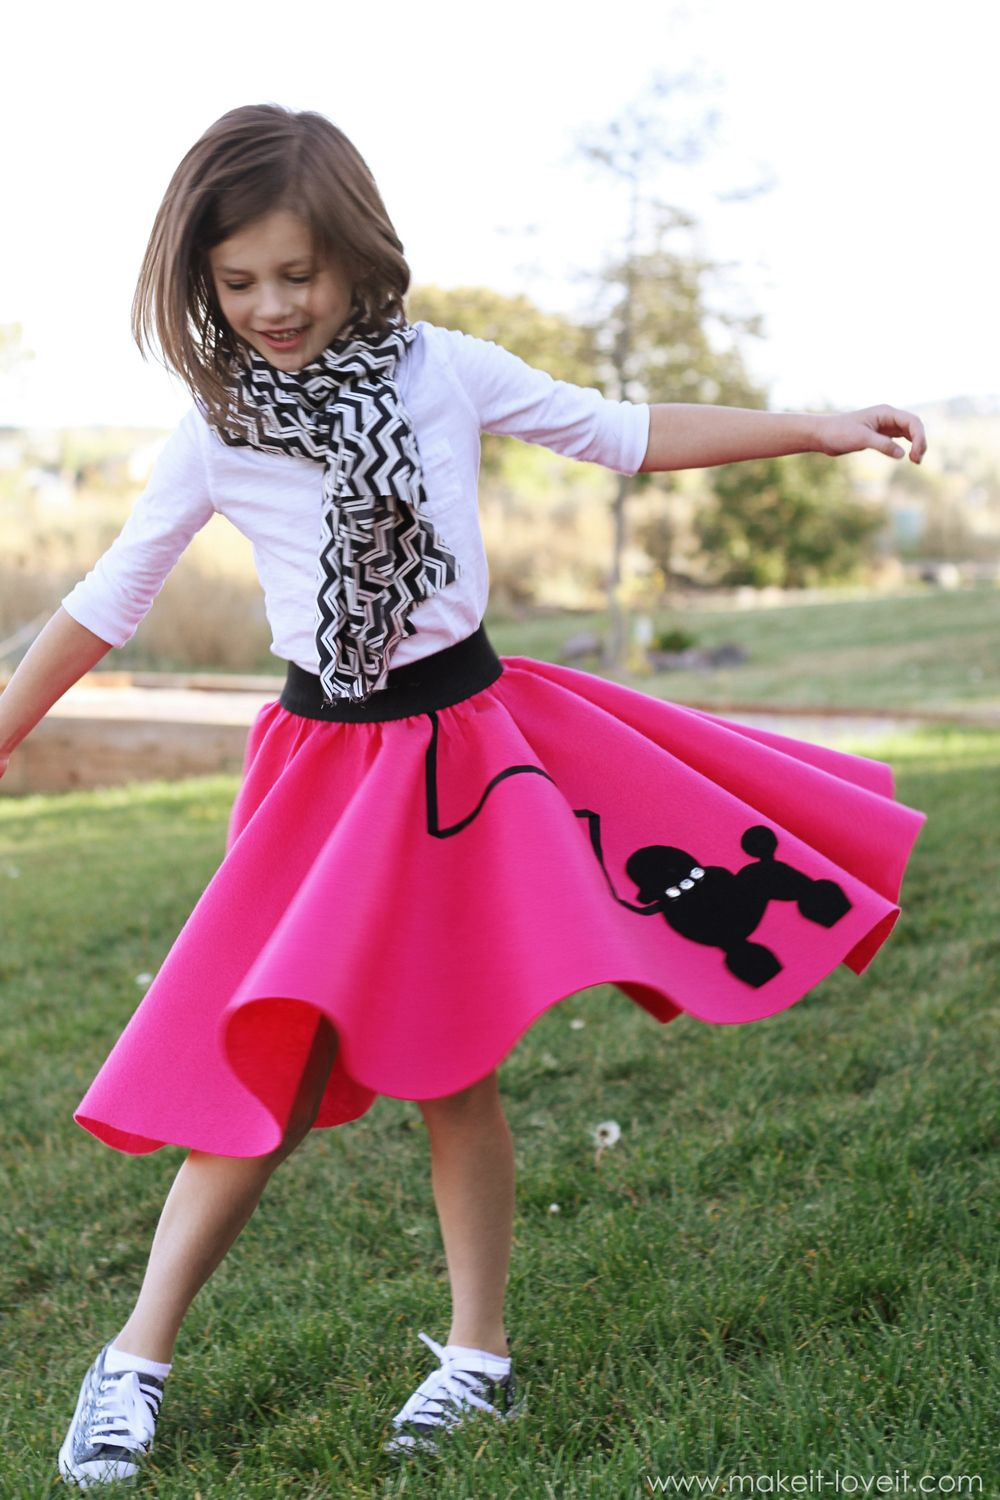 Poodle skirt | Halloween costumes | Pinterest | Chistes, Costura y Ropa